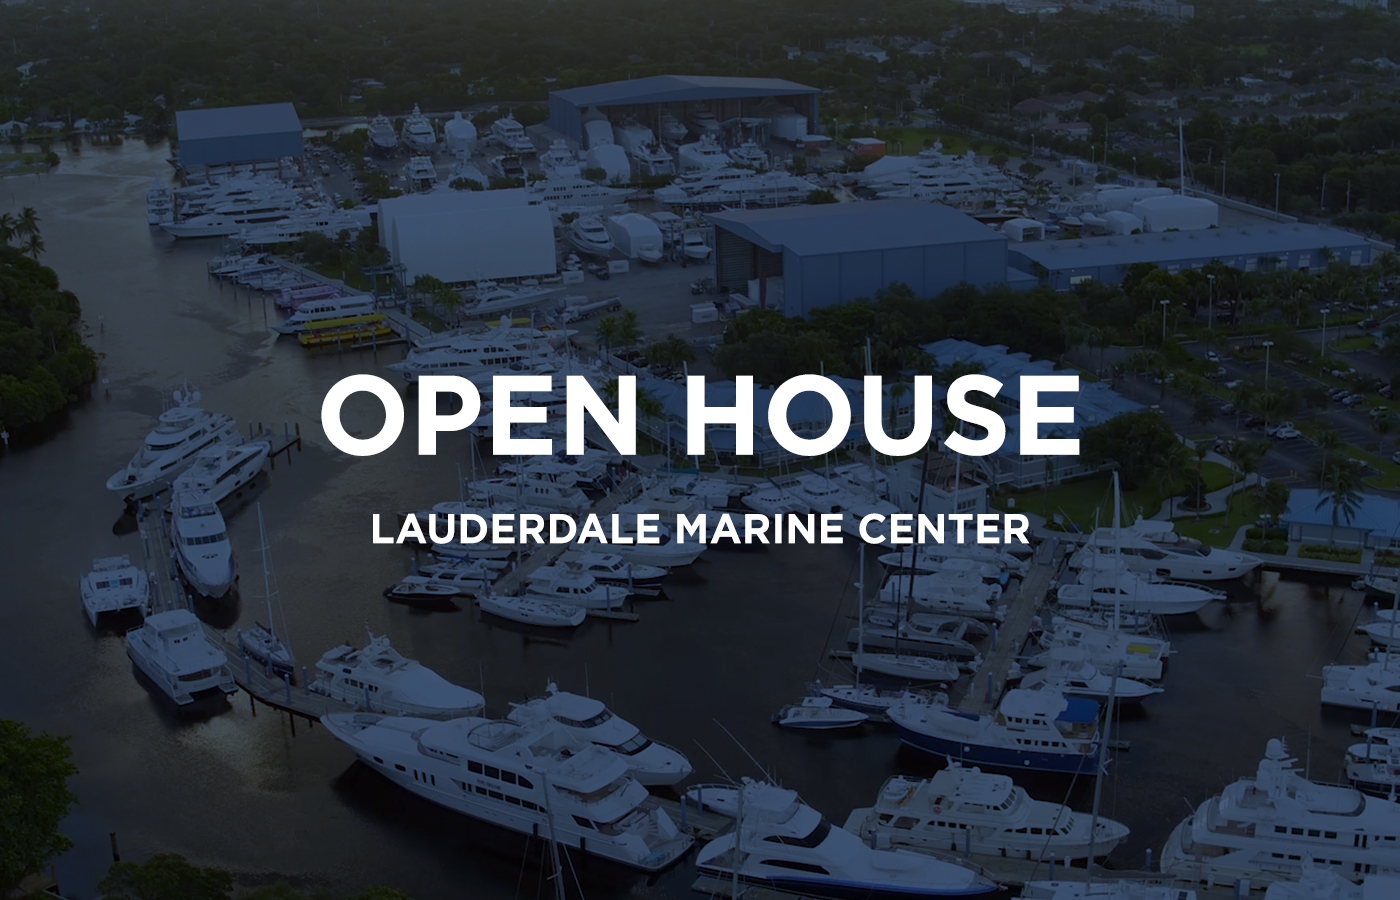 Lauderdale Marine Center Open House [Superyachts For Sale]